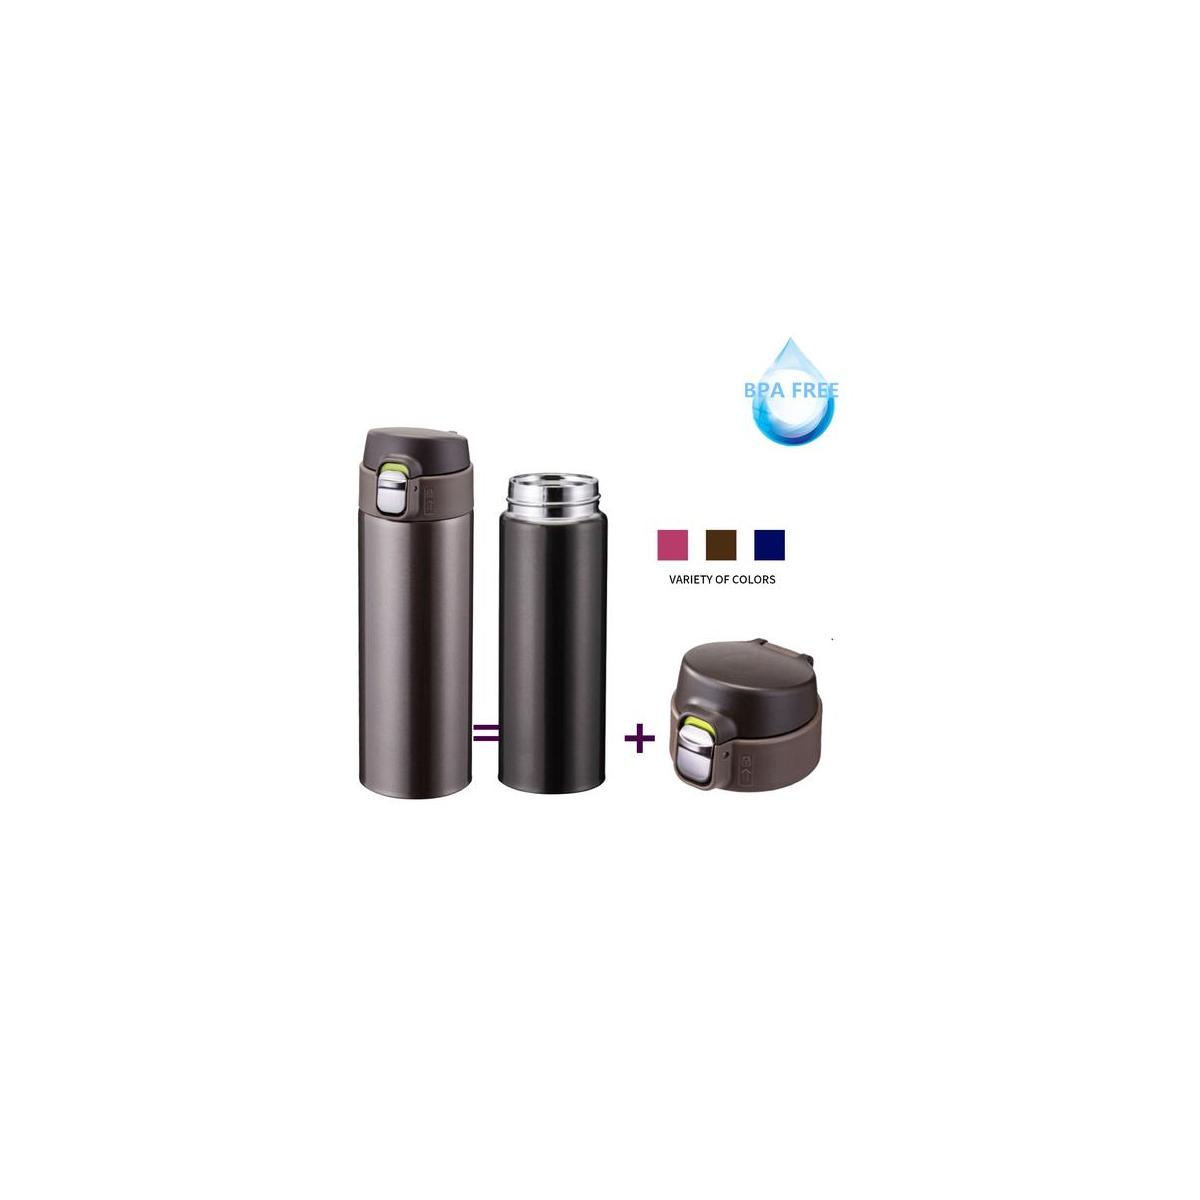 ONTA Insulated Vacuum Sports Water Bottle, 17OZ/500ML Keeps Cold 20H, Hot 12H Stainless Steel Water Bottle and Leakproof Thermos Coffee Travel Mug